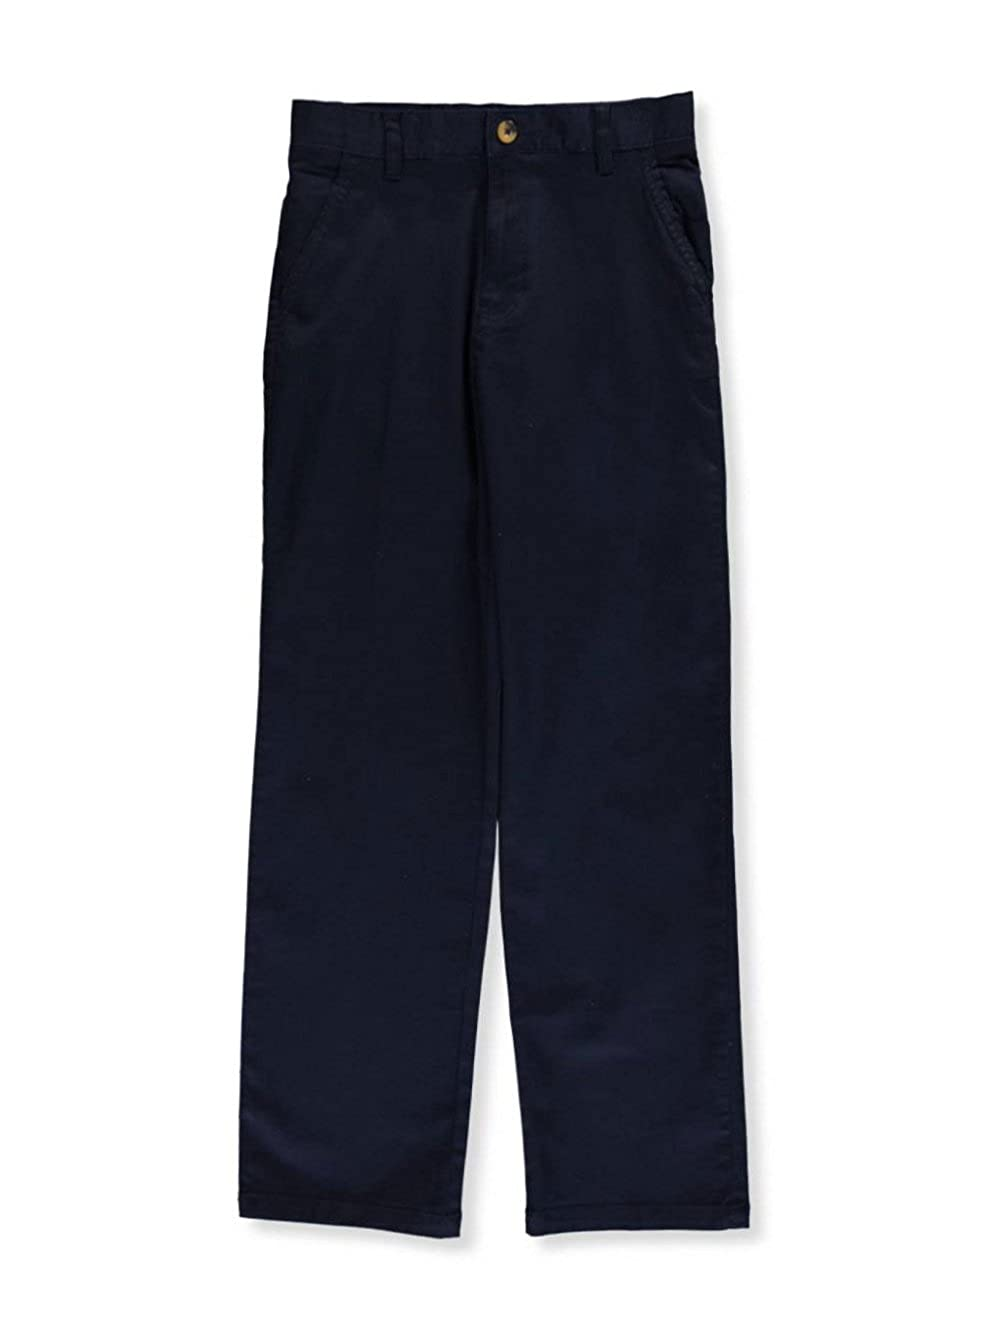 Navy French Toast Big Boys Twill Straight Fit Chino Pants 18